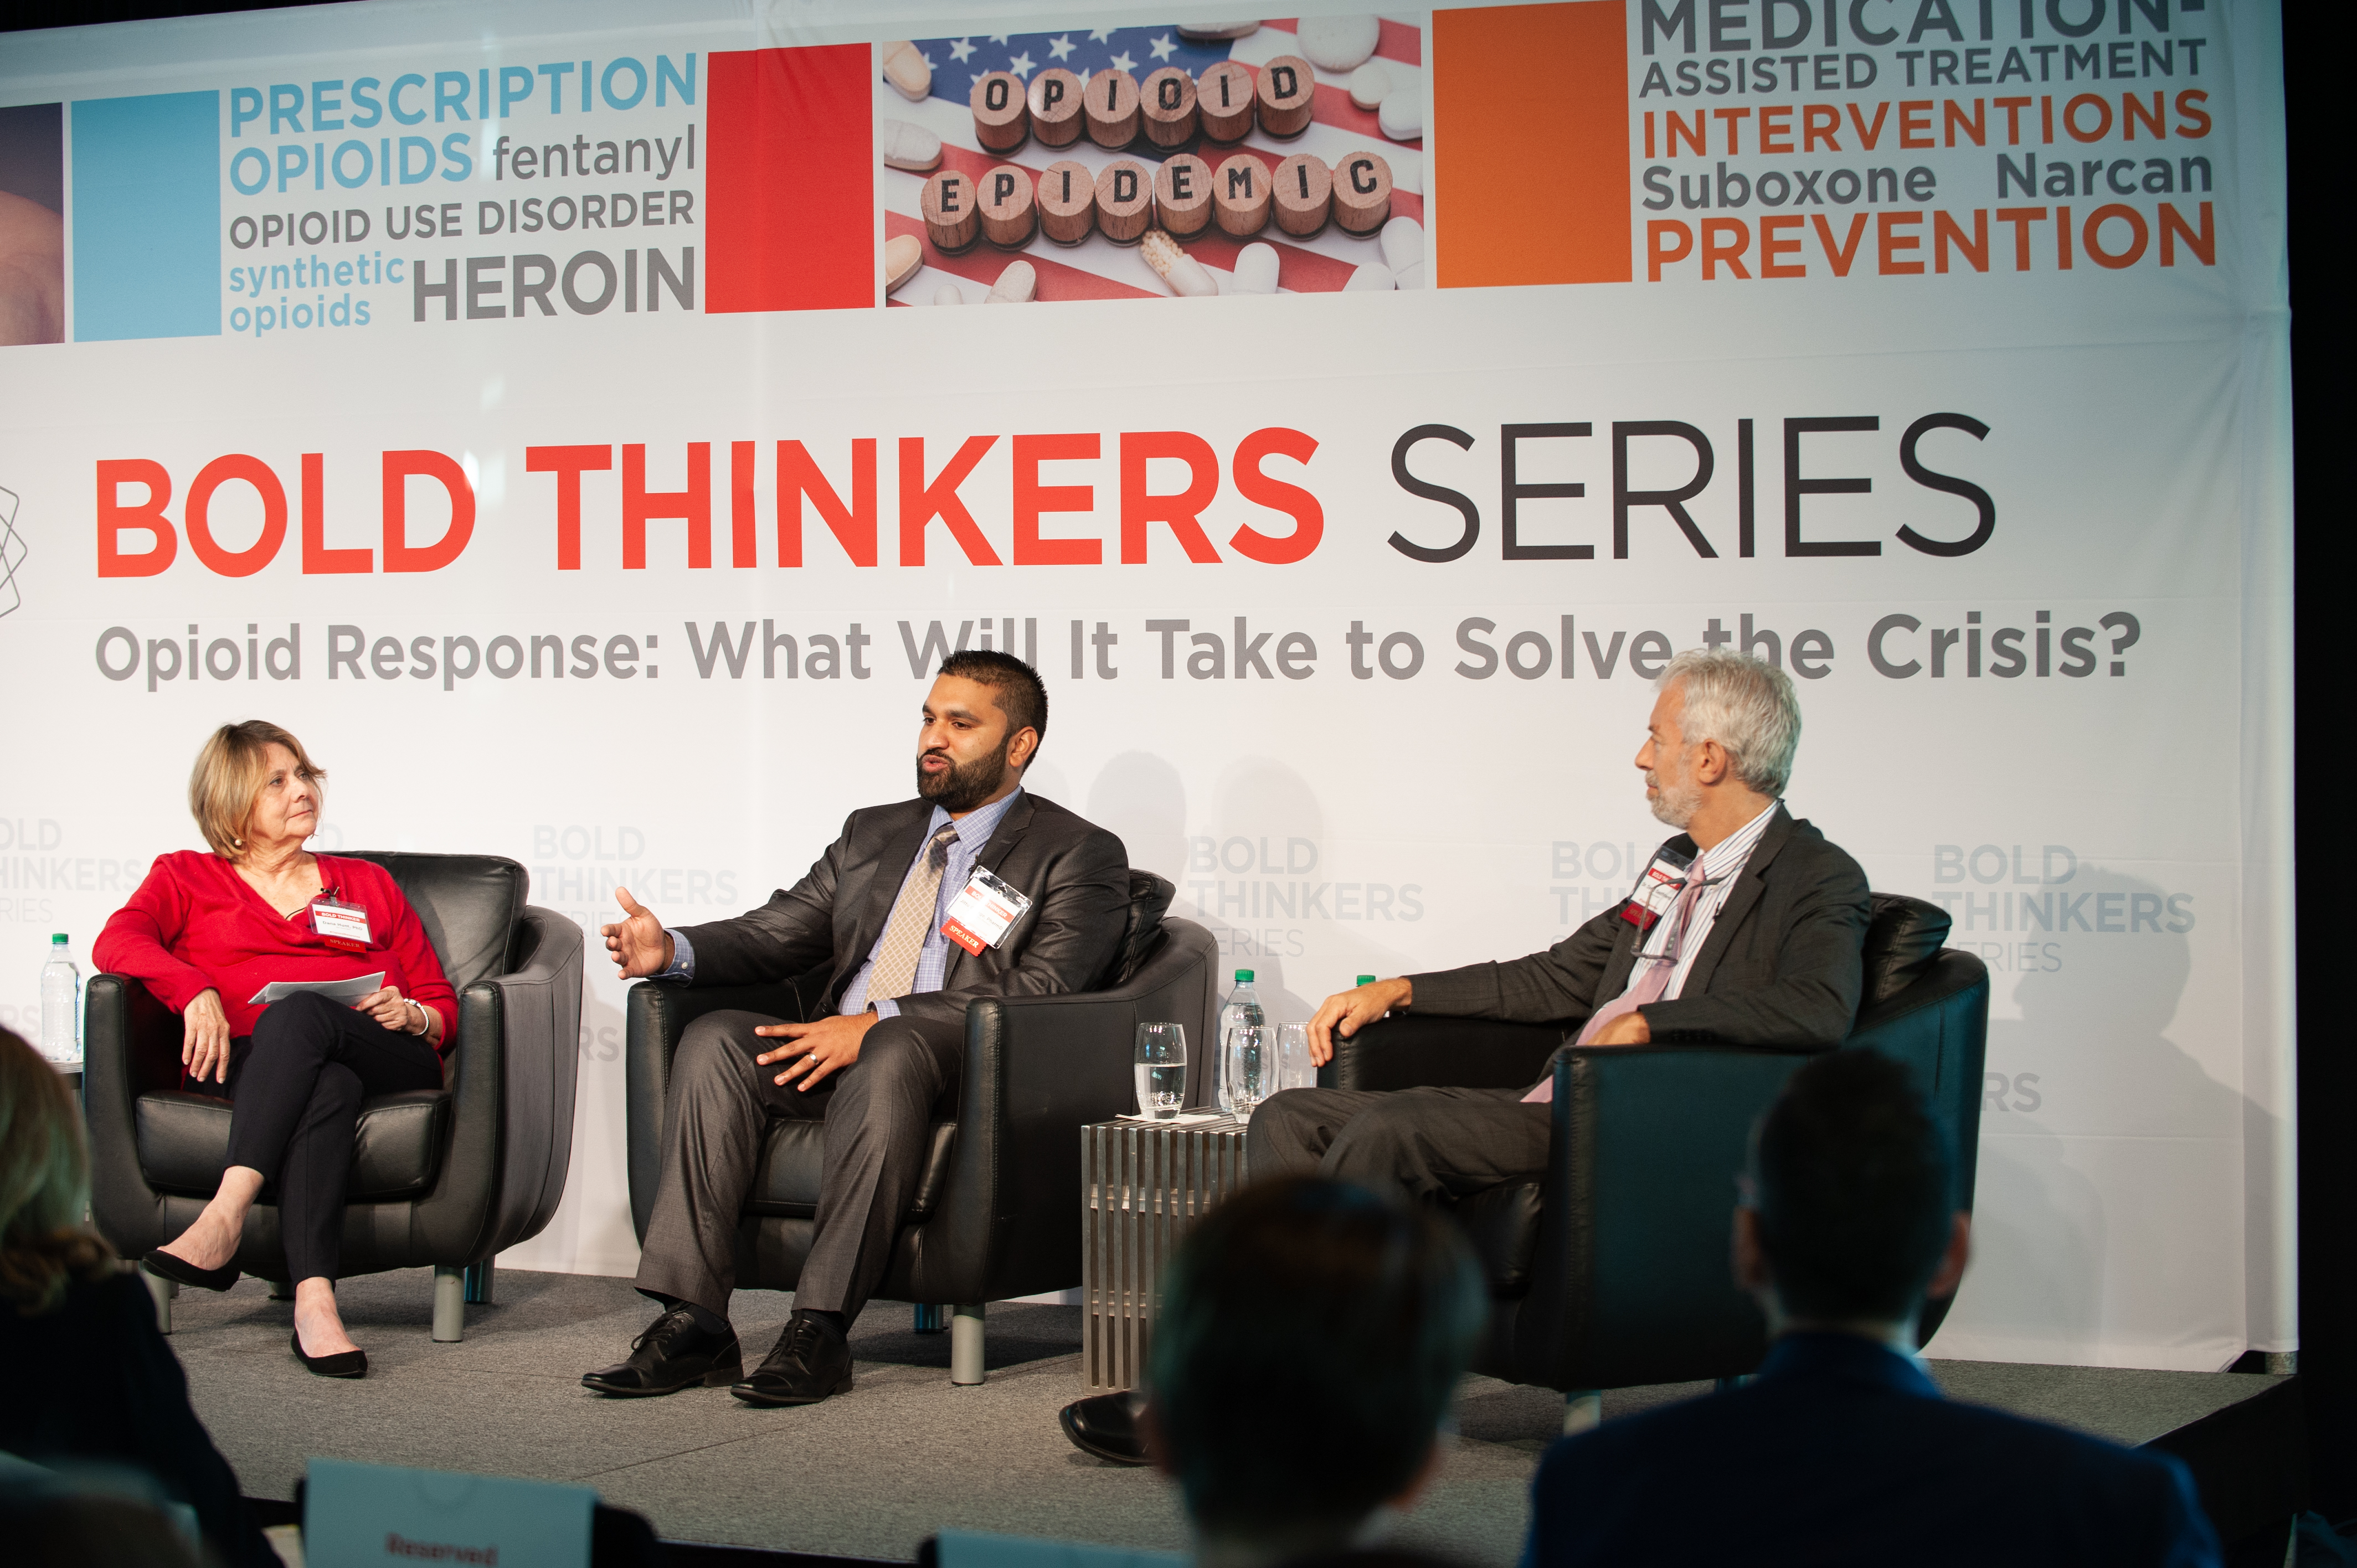 Dr. Jittu George, director of pharmacy services at Shop and Carry Pharmacy, discusses how small pharmacies can play a crucial role in reducing opioid abuse and related complications.